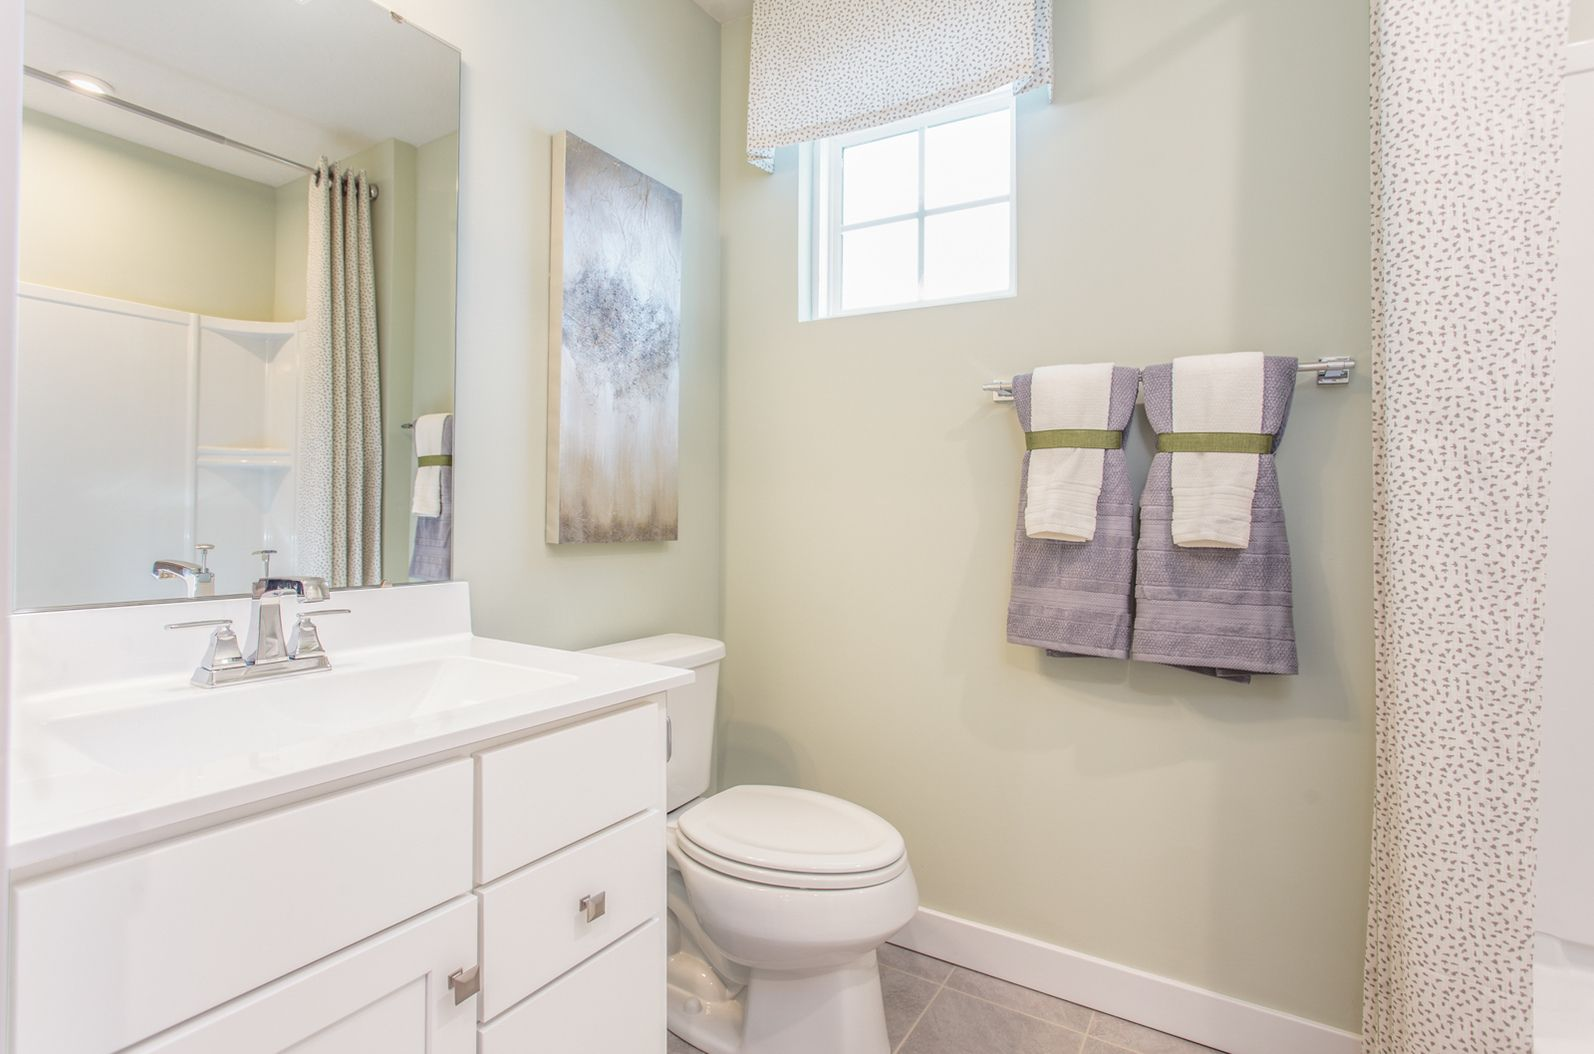 Bathroom featured in the Rosecliff By HeartlandHomes in Morgantown, WV